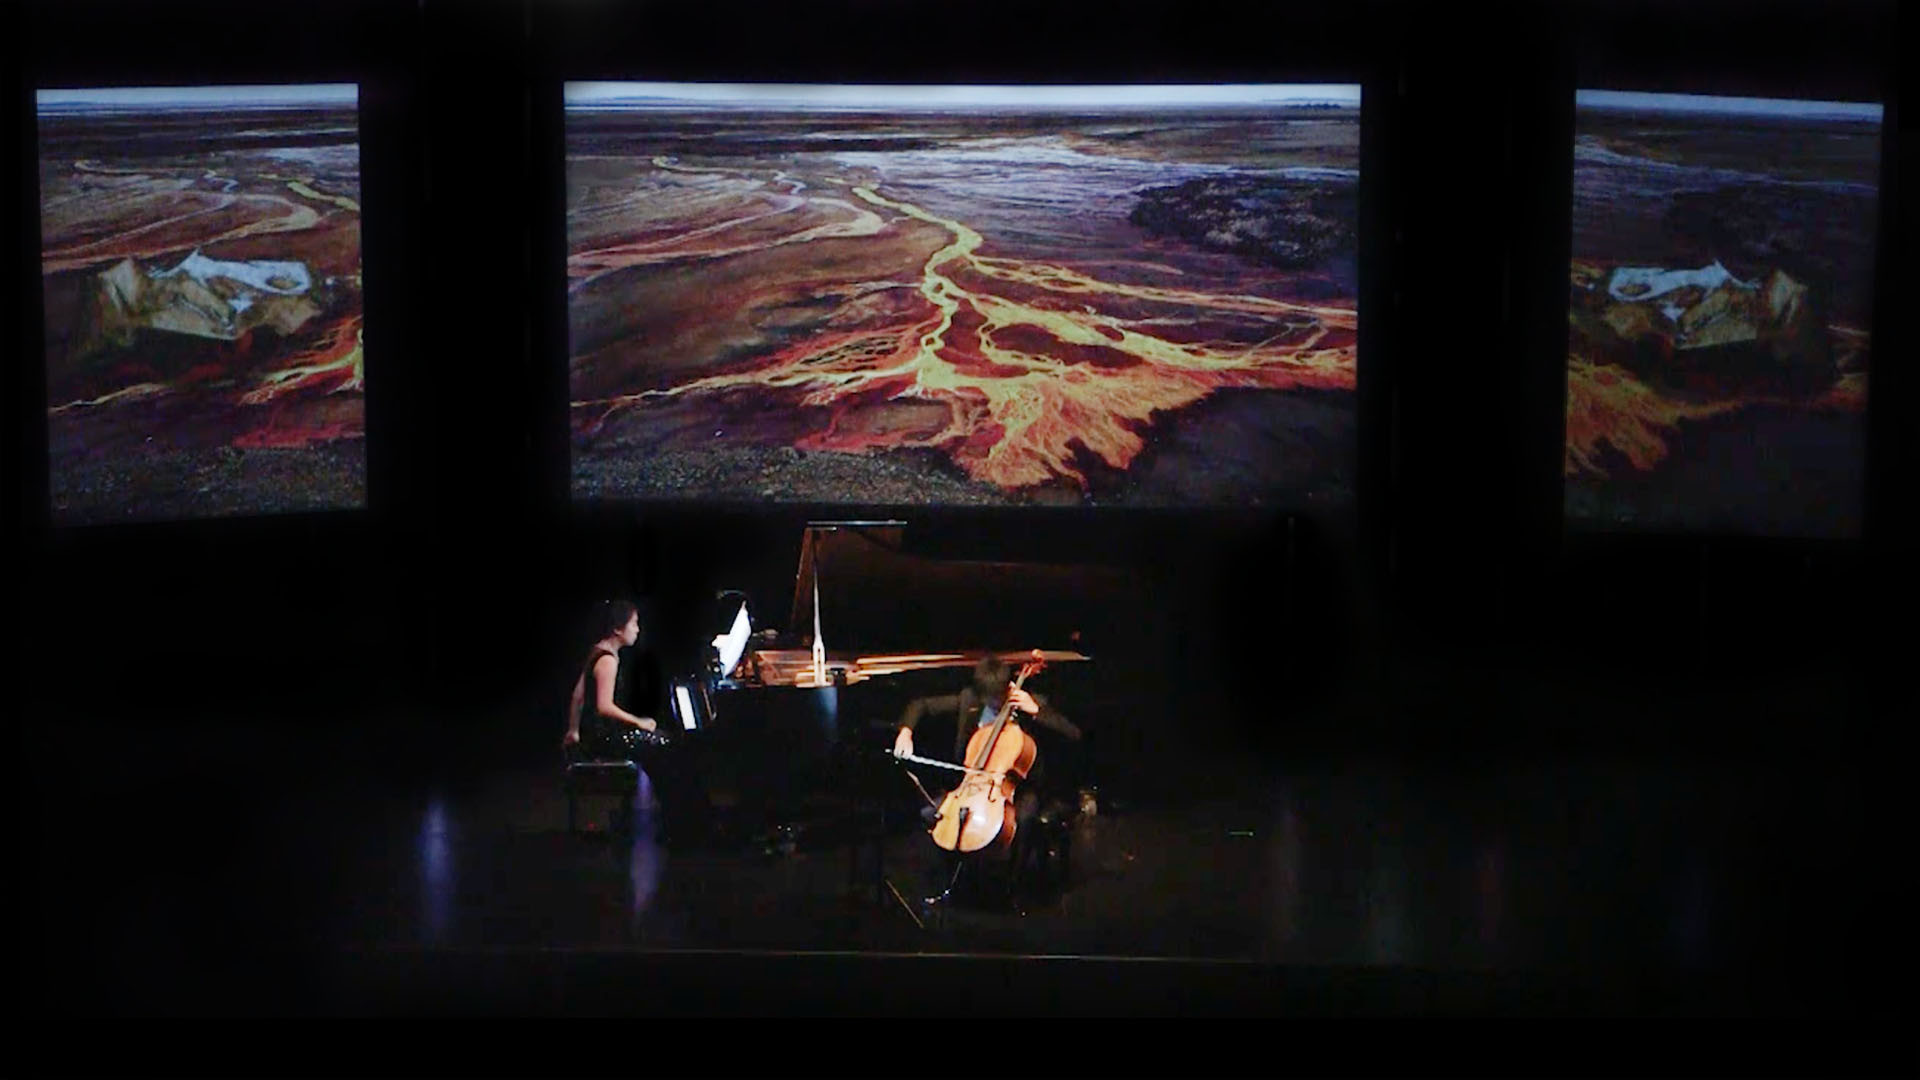 CHENG2 DUO AT THE NATIONAL ART GALLERY